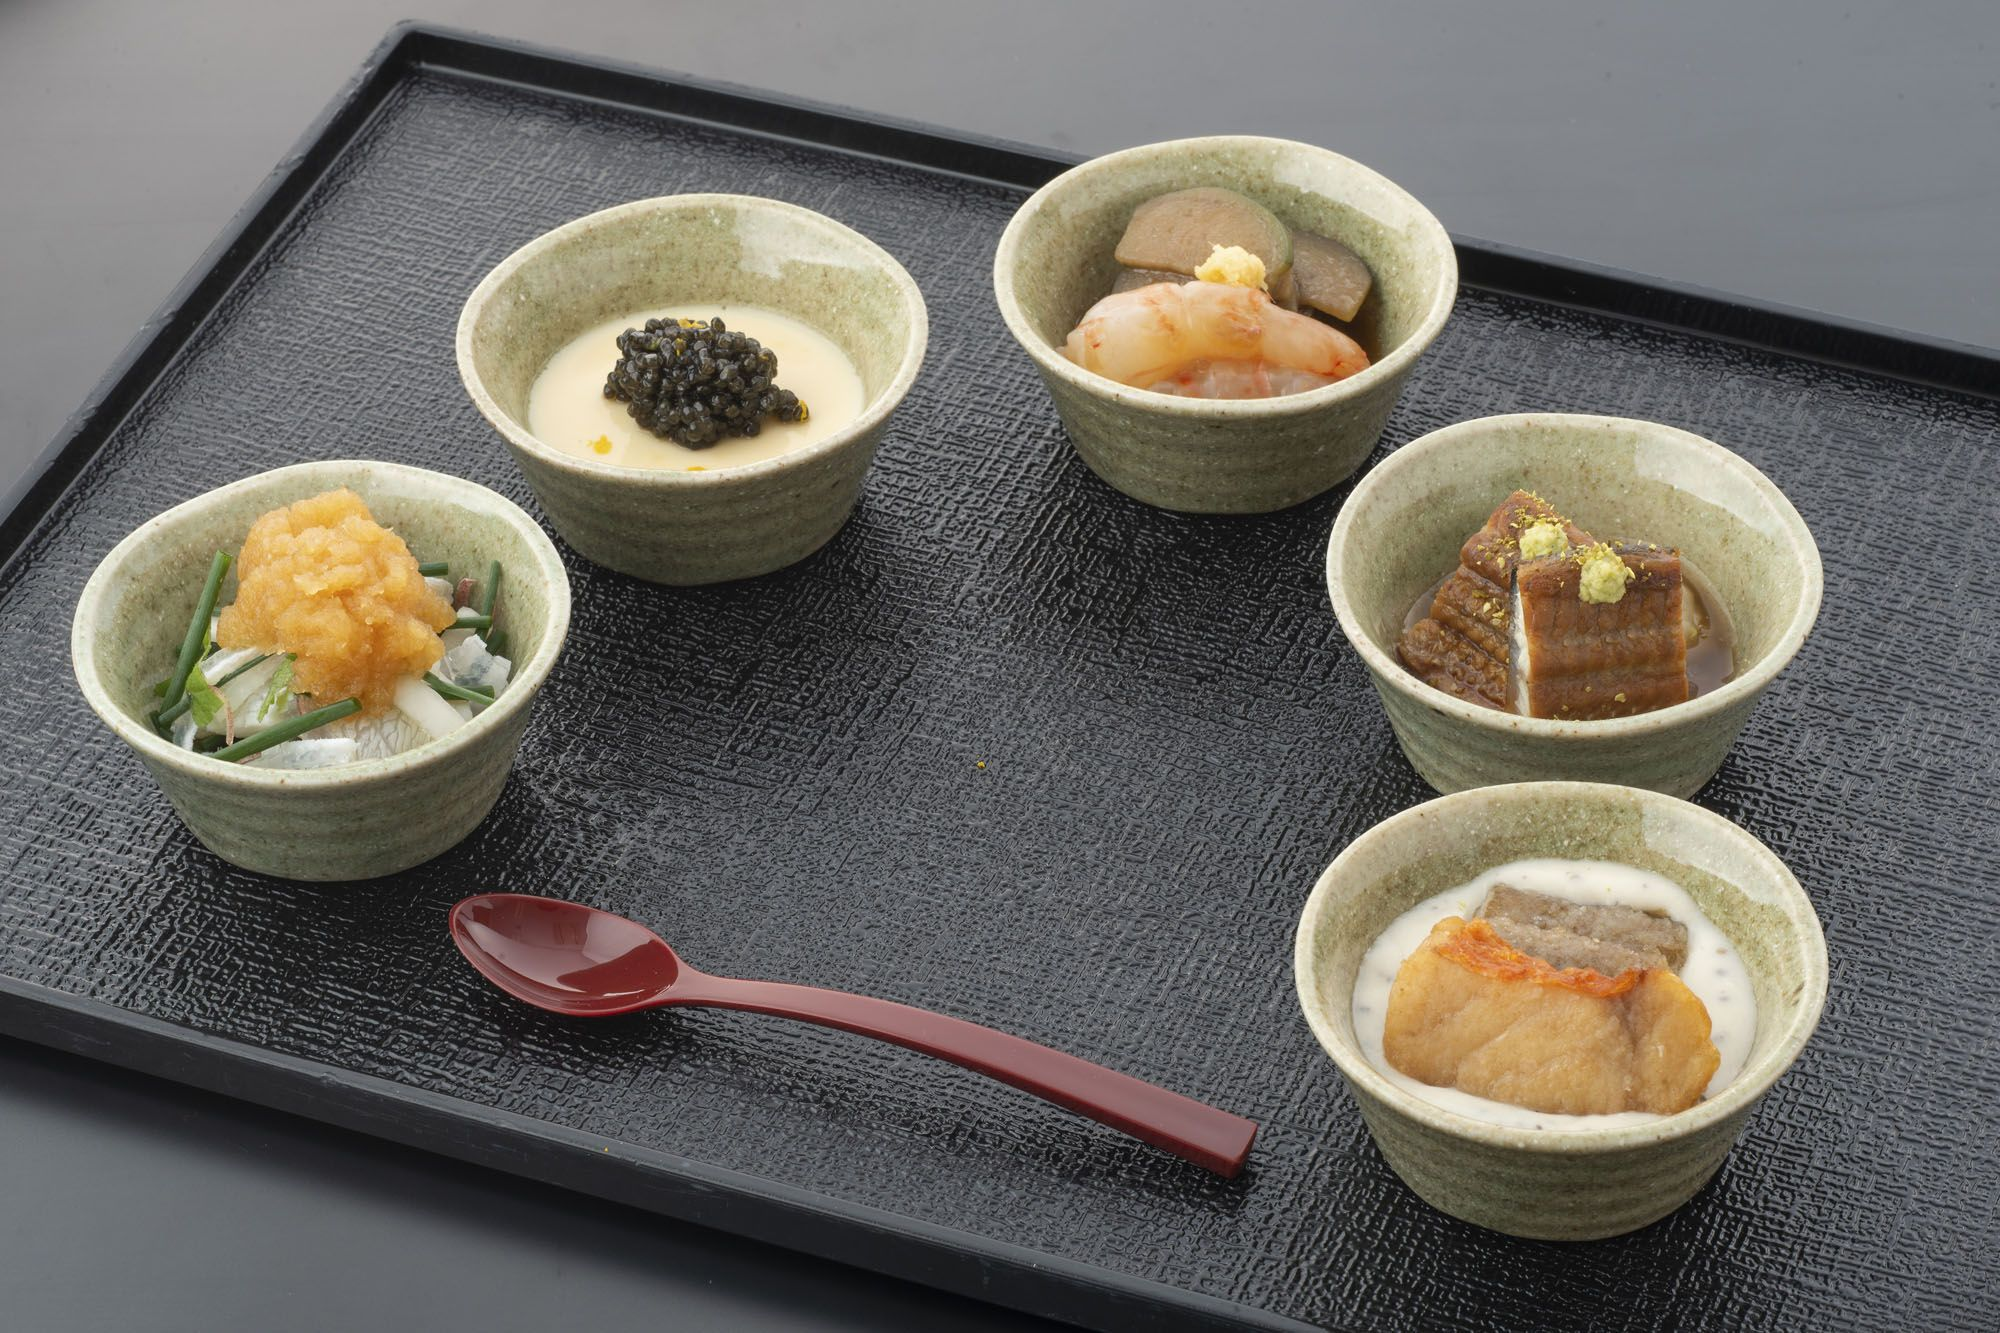 Food By Michelin-Starred Chefs To Prestige Champagnes: Here's How You'll Dine On Japan Airlines' First And Business Class